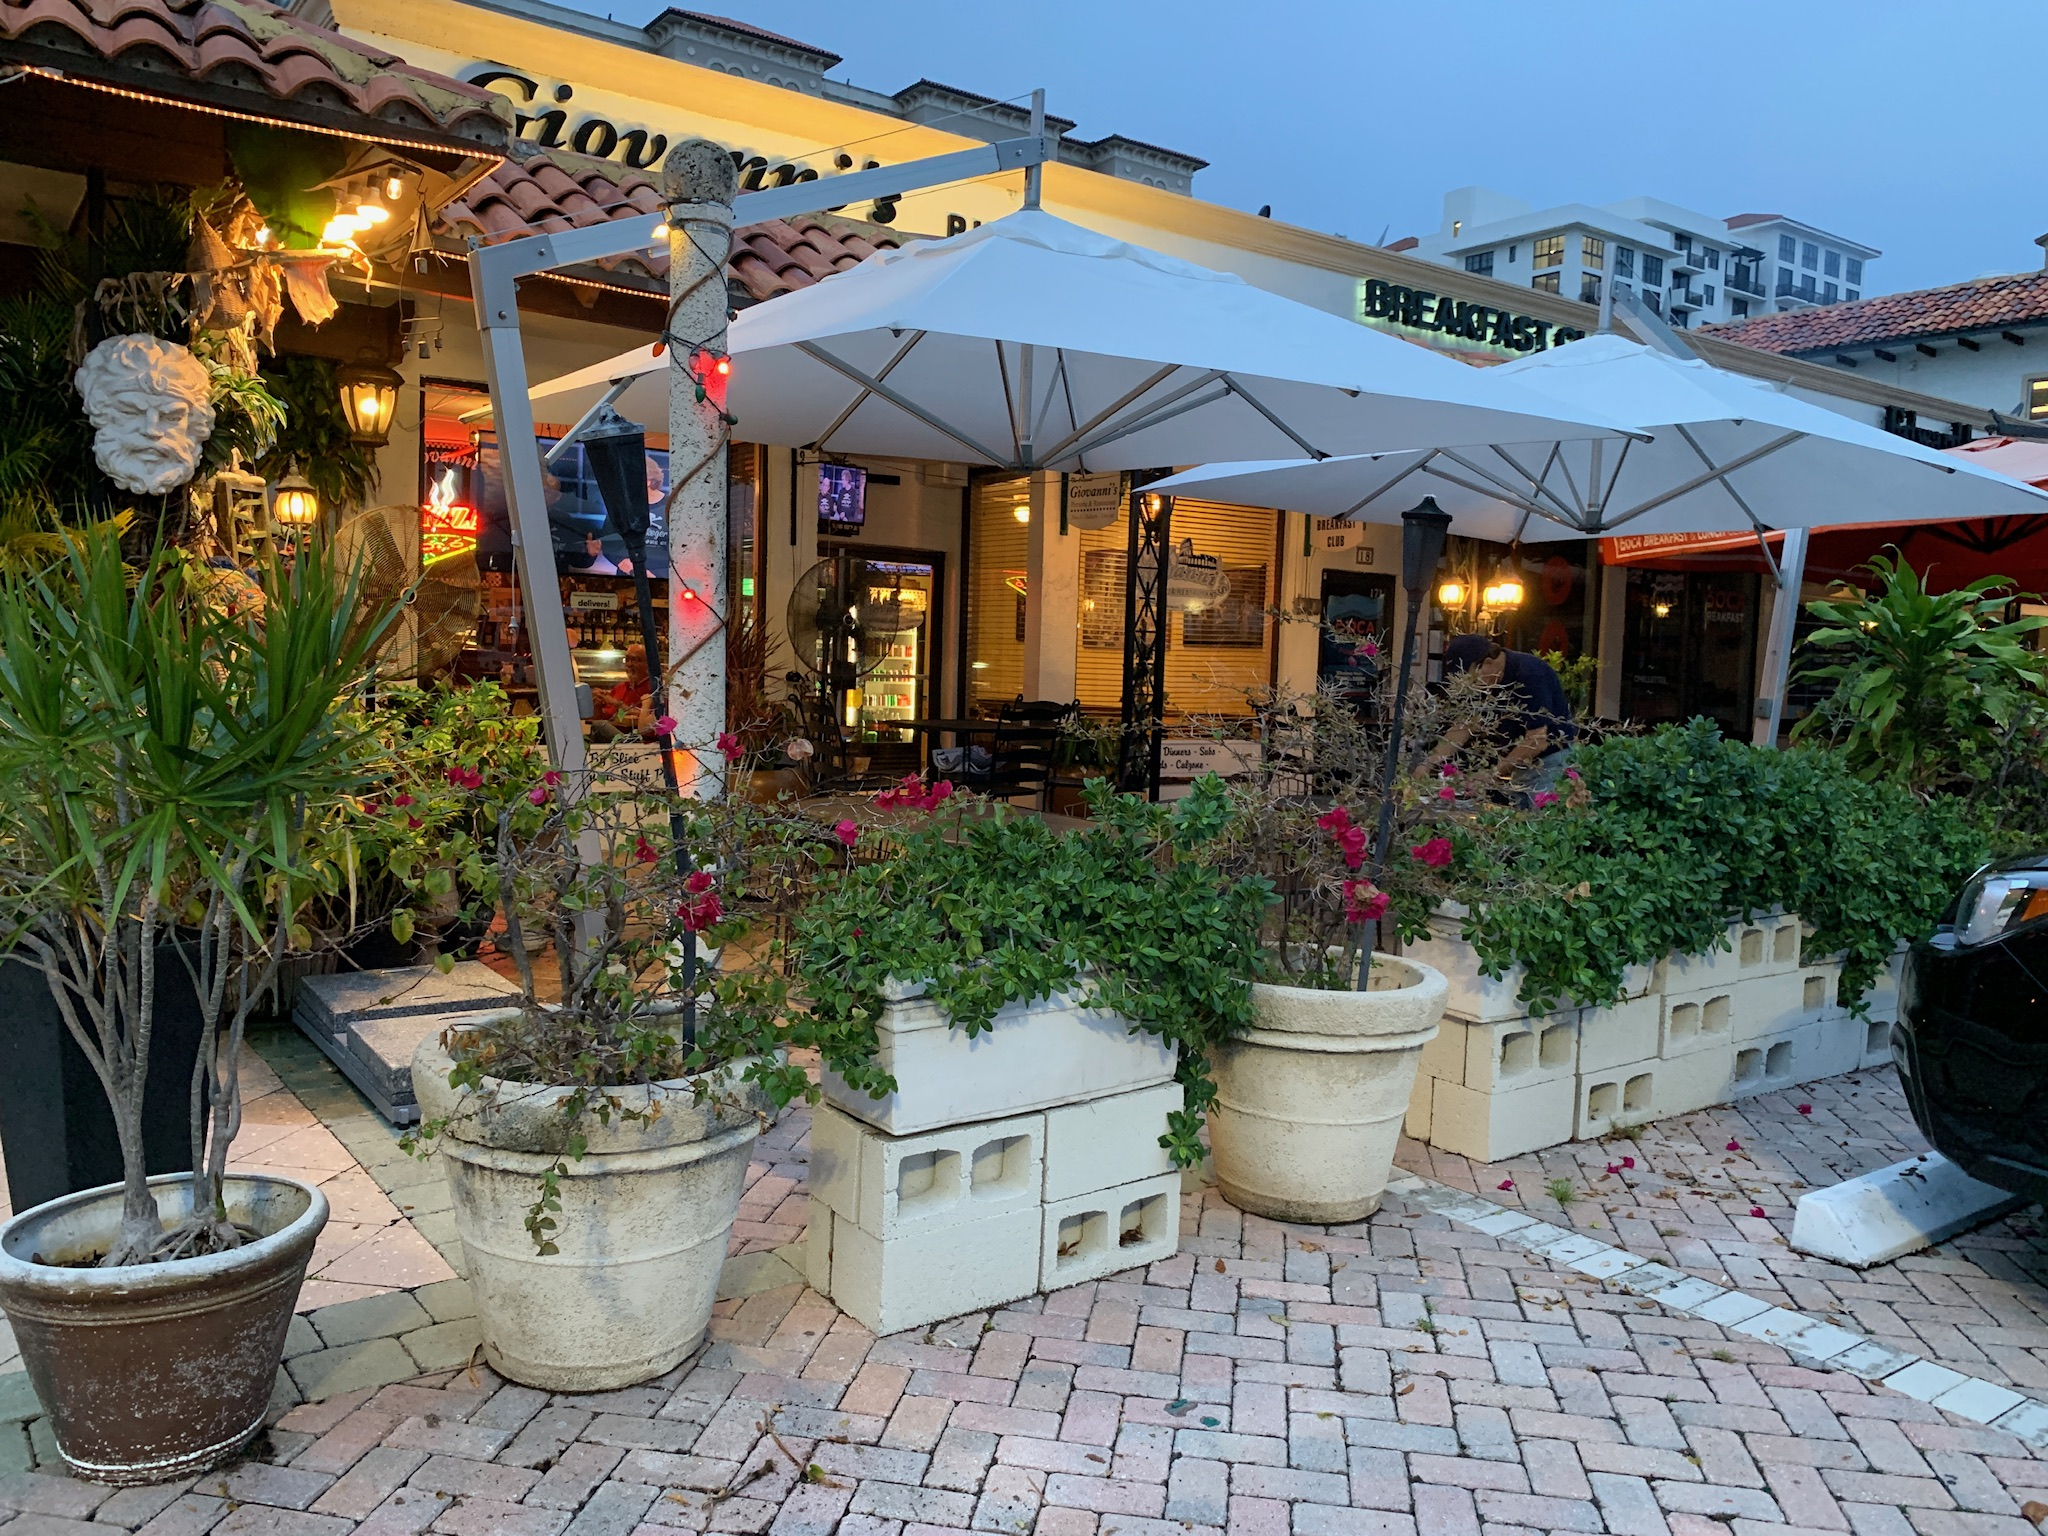 Giovannis Pizzeria Restaurant, Boca Raton: Bambrella's Hurricane Side Wind Offset (Cantilever) Umbrellas are the perfect shade solution for any restaurant!